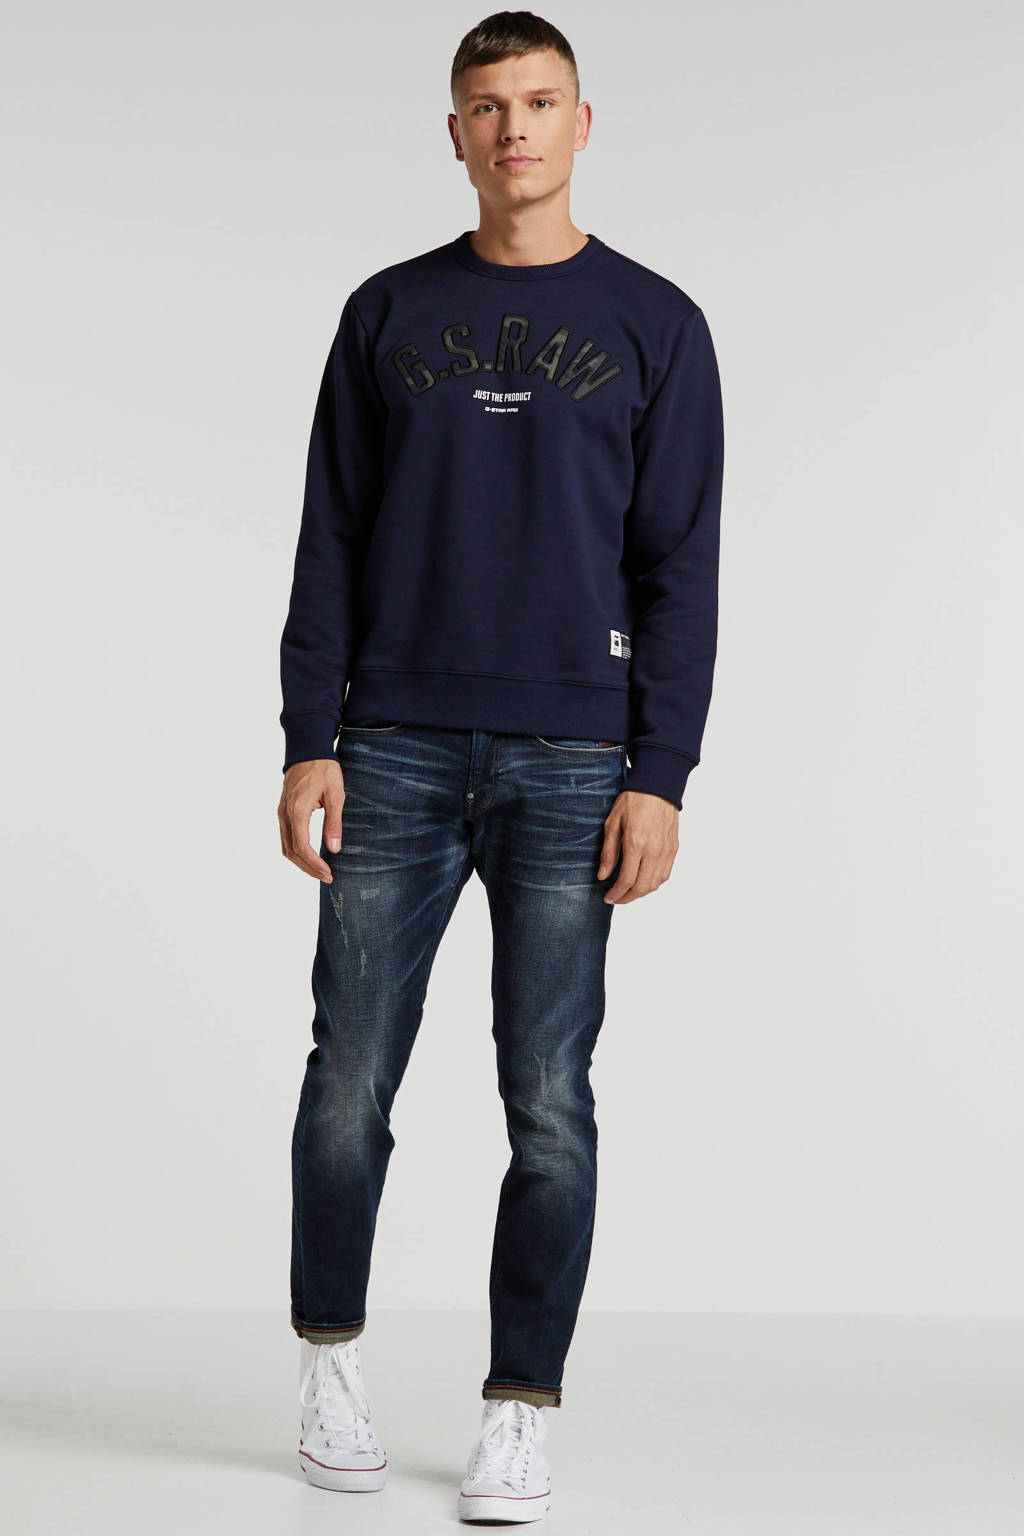 G-Star RAW skinny fit jeans Revend worn in wave destroyed, Worn in wave destroyed